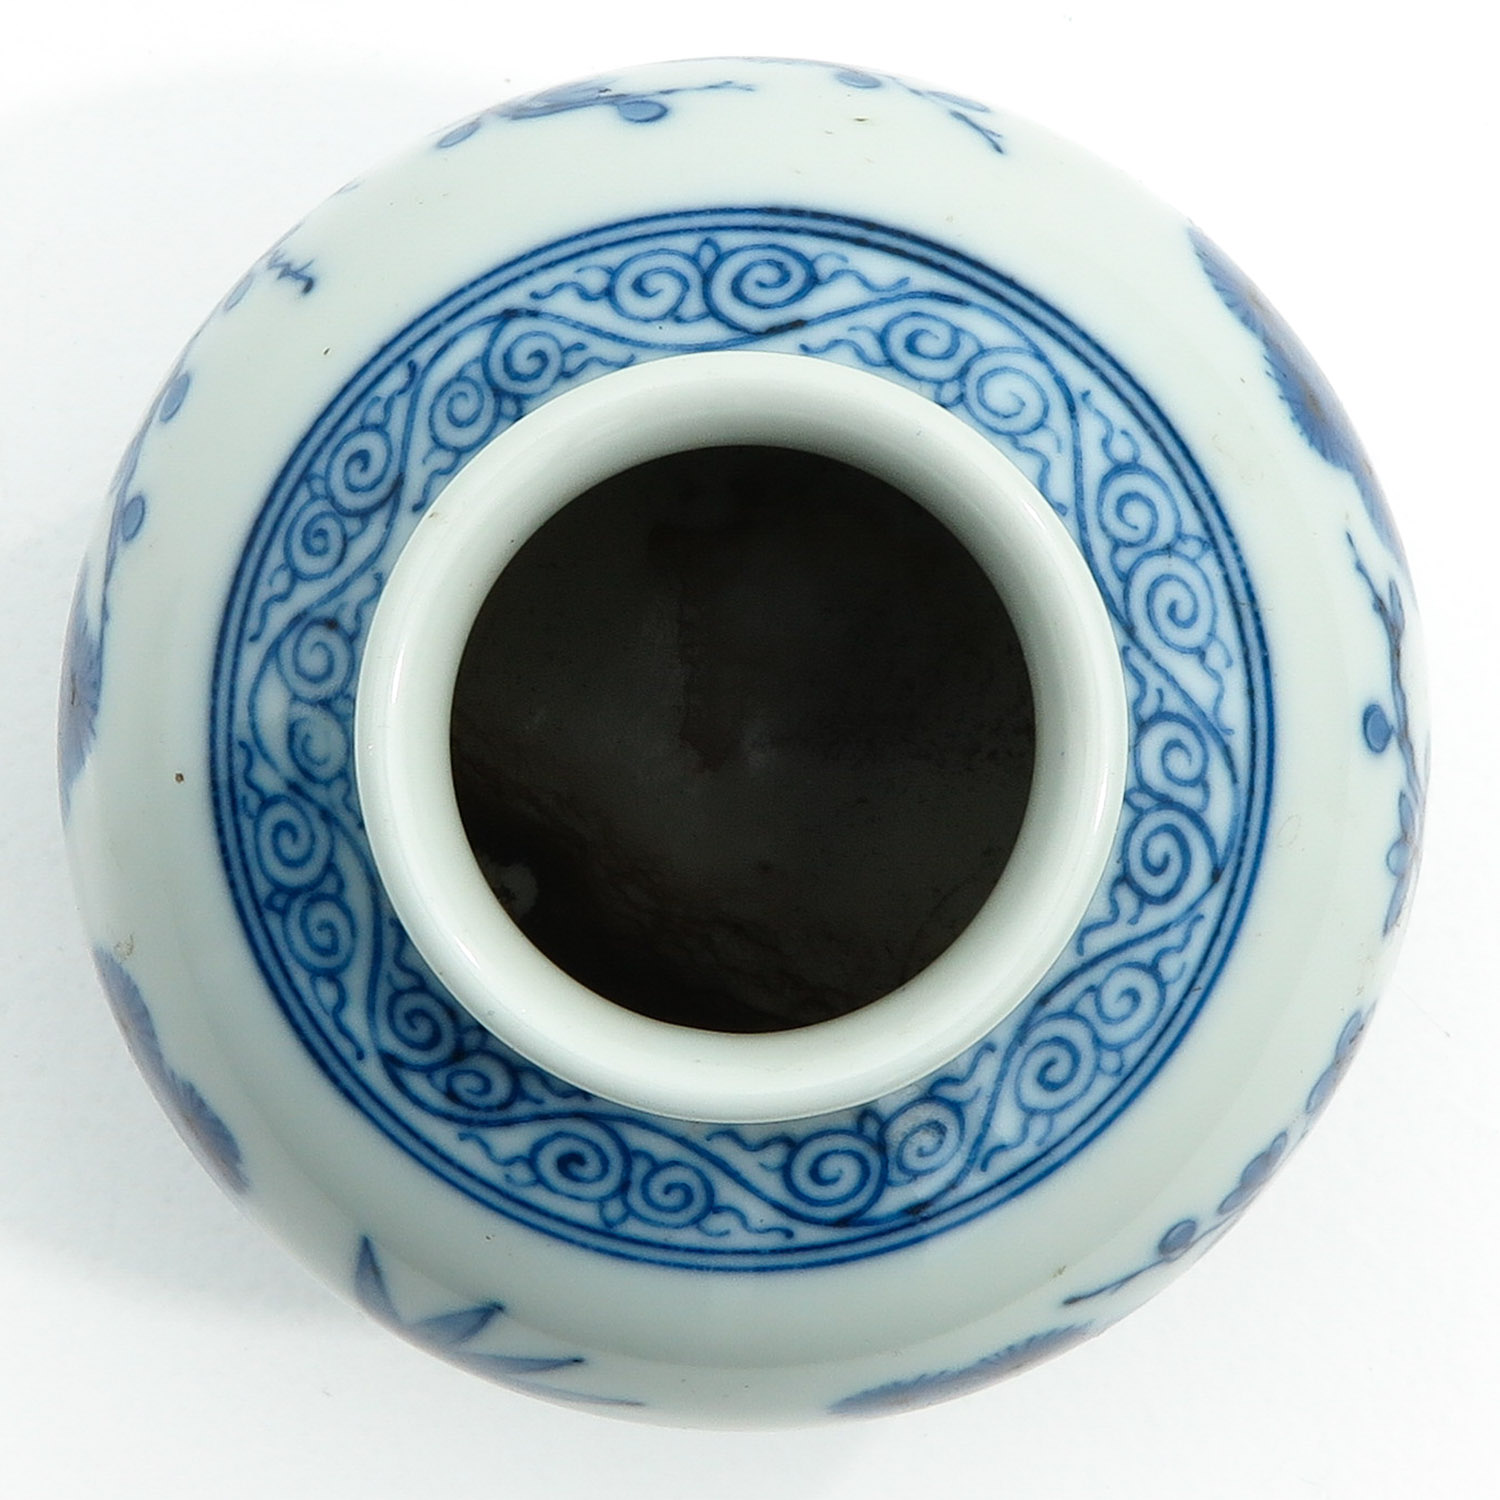 A Small Blue and White Vase - Image 5 of 9